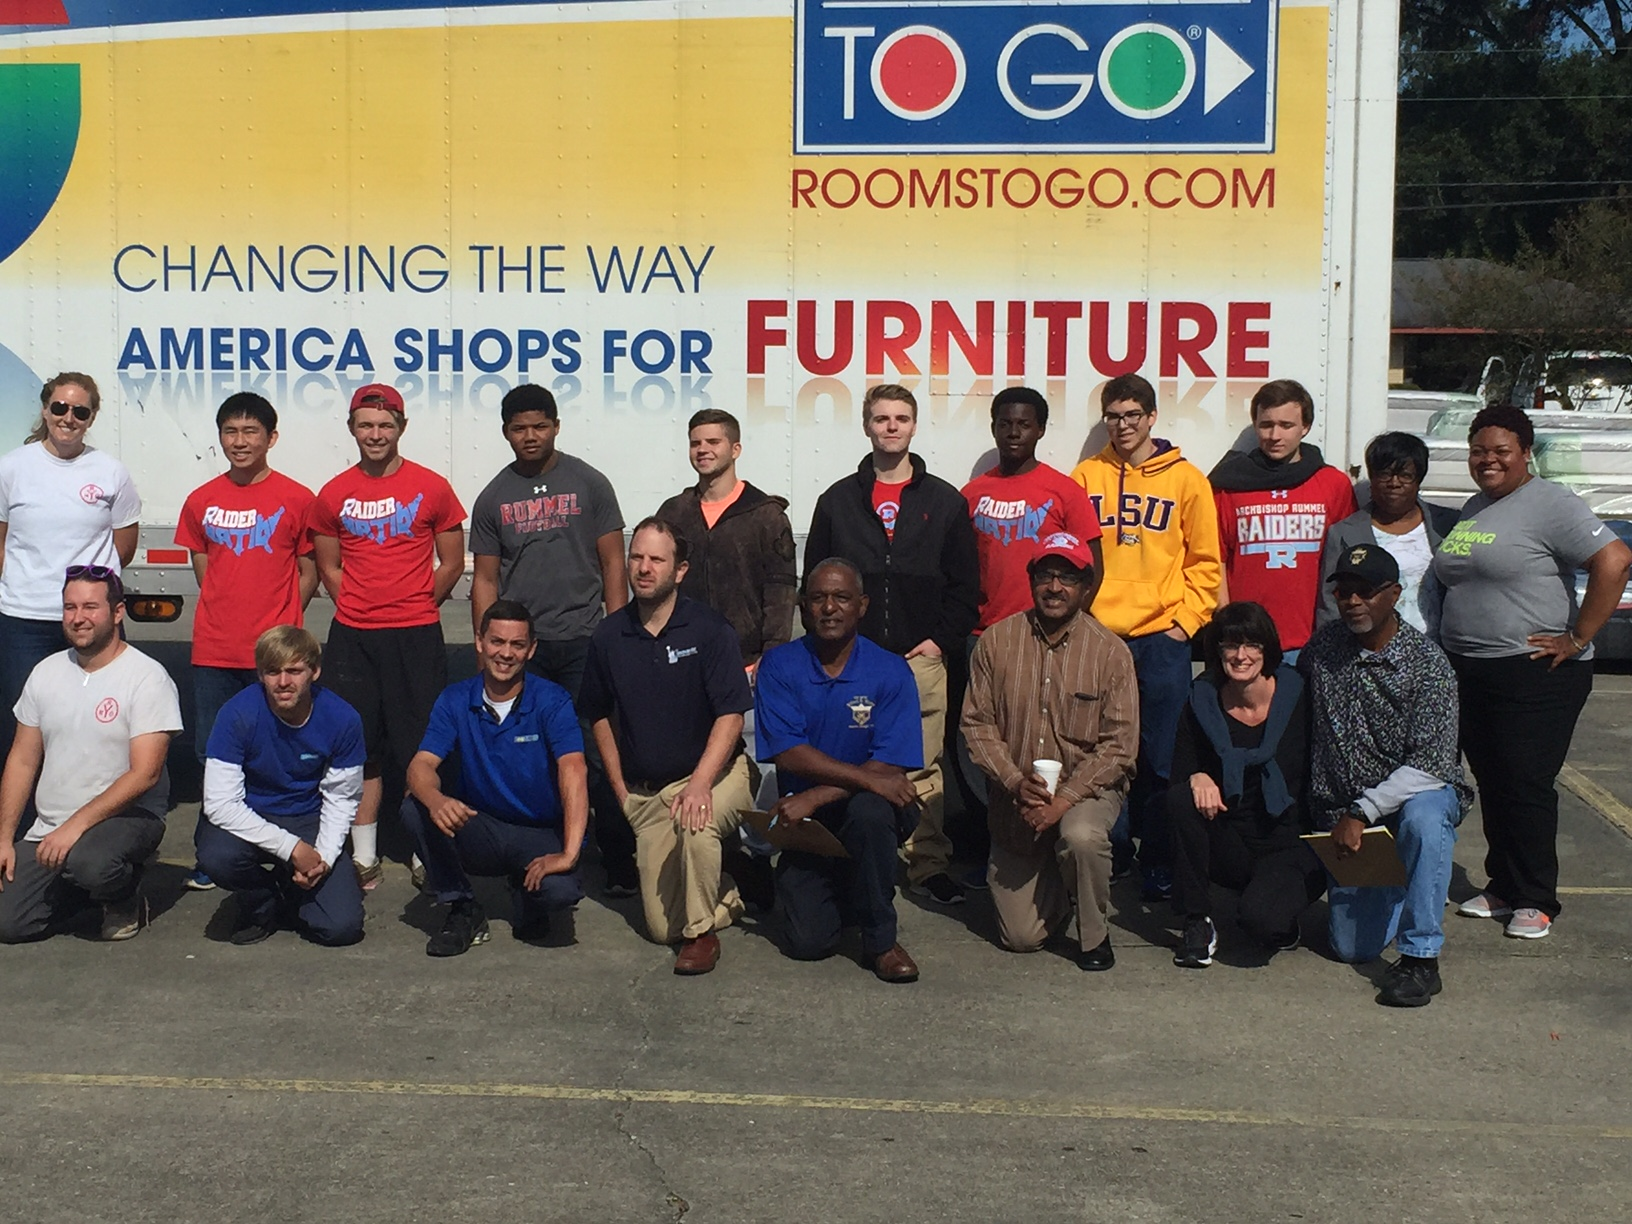 Yrno And Rooms To Go Deliver Relief For Baton Rouge Flood Victims